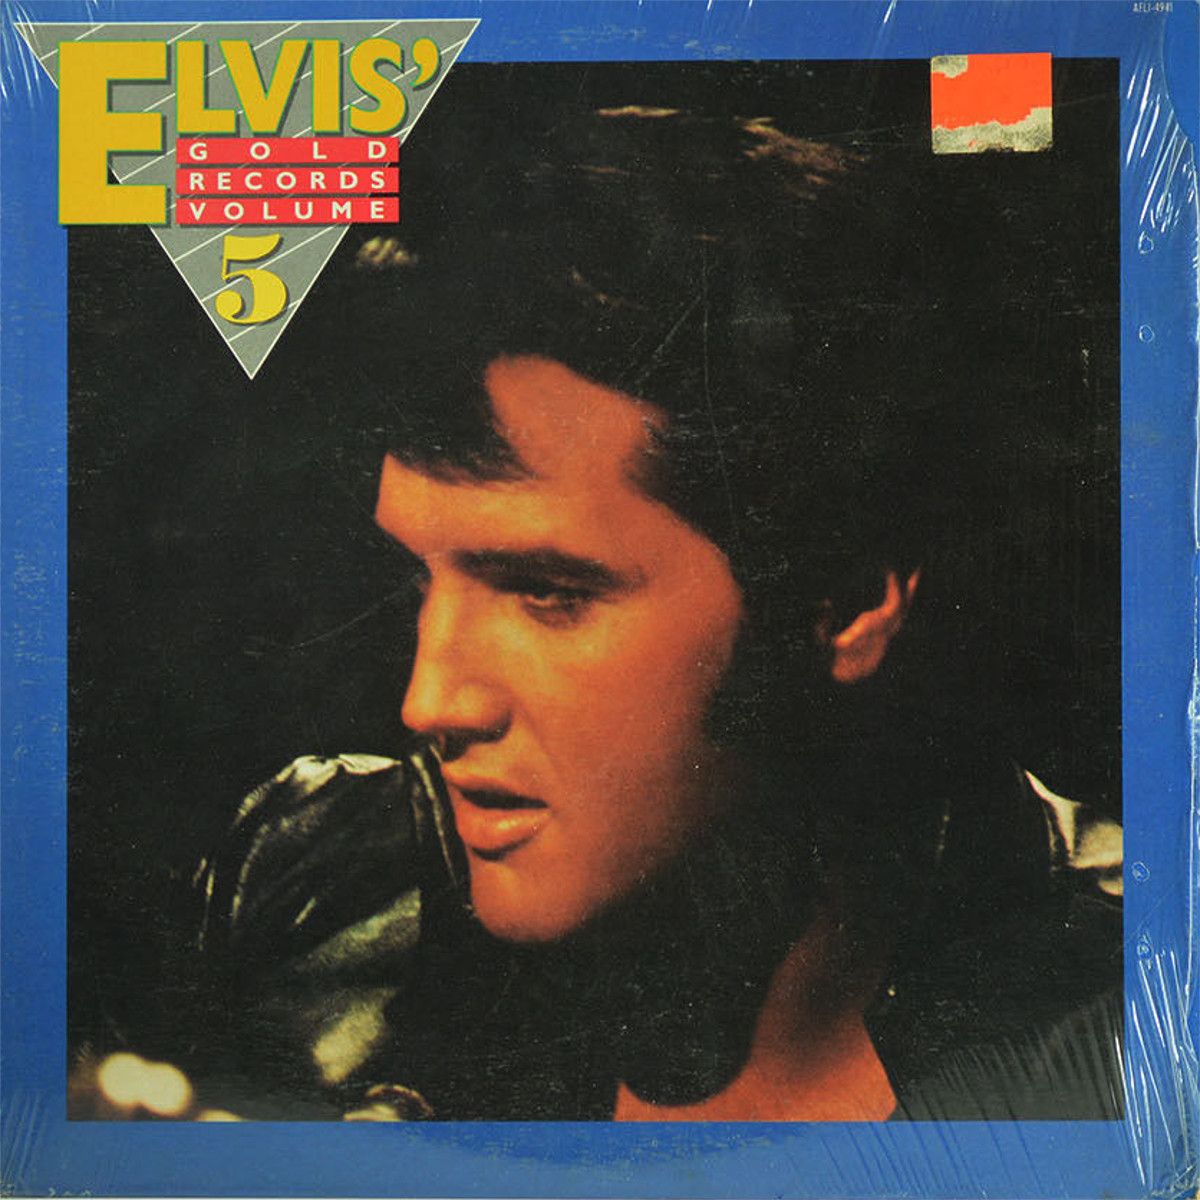 ELVIS' GOLD RECORDS VOL 5 Afl1-4941evdukp